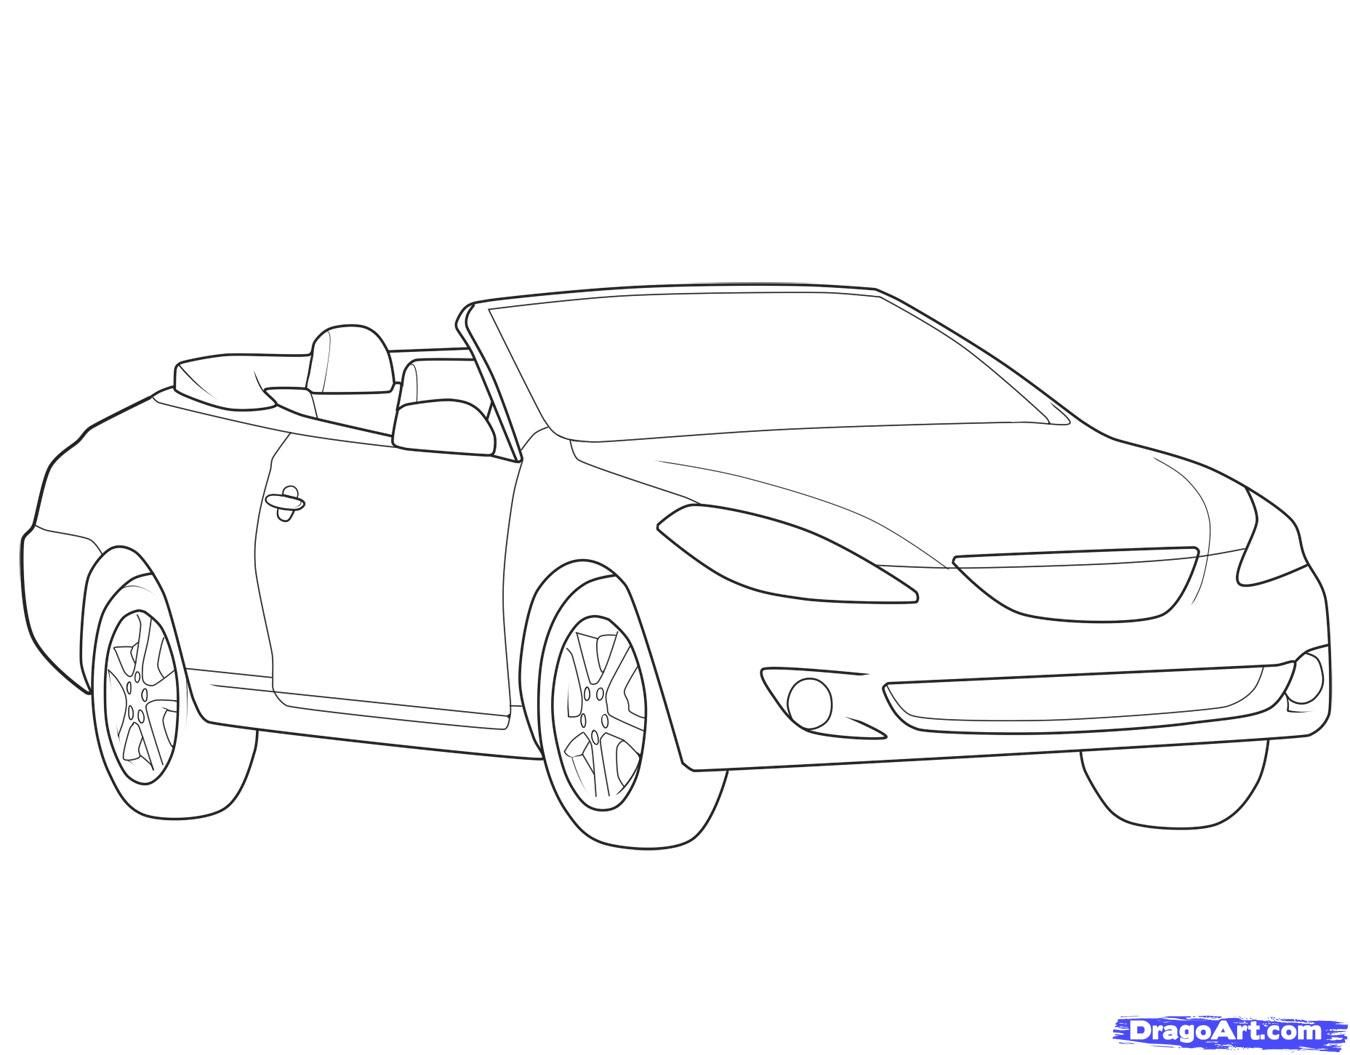 How to draw the car a cabriolet step by step